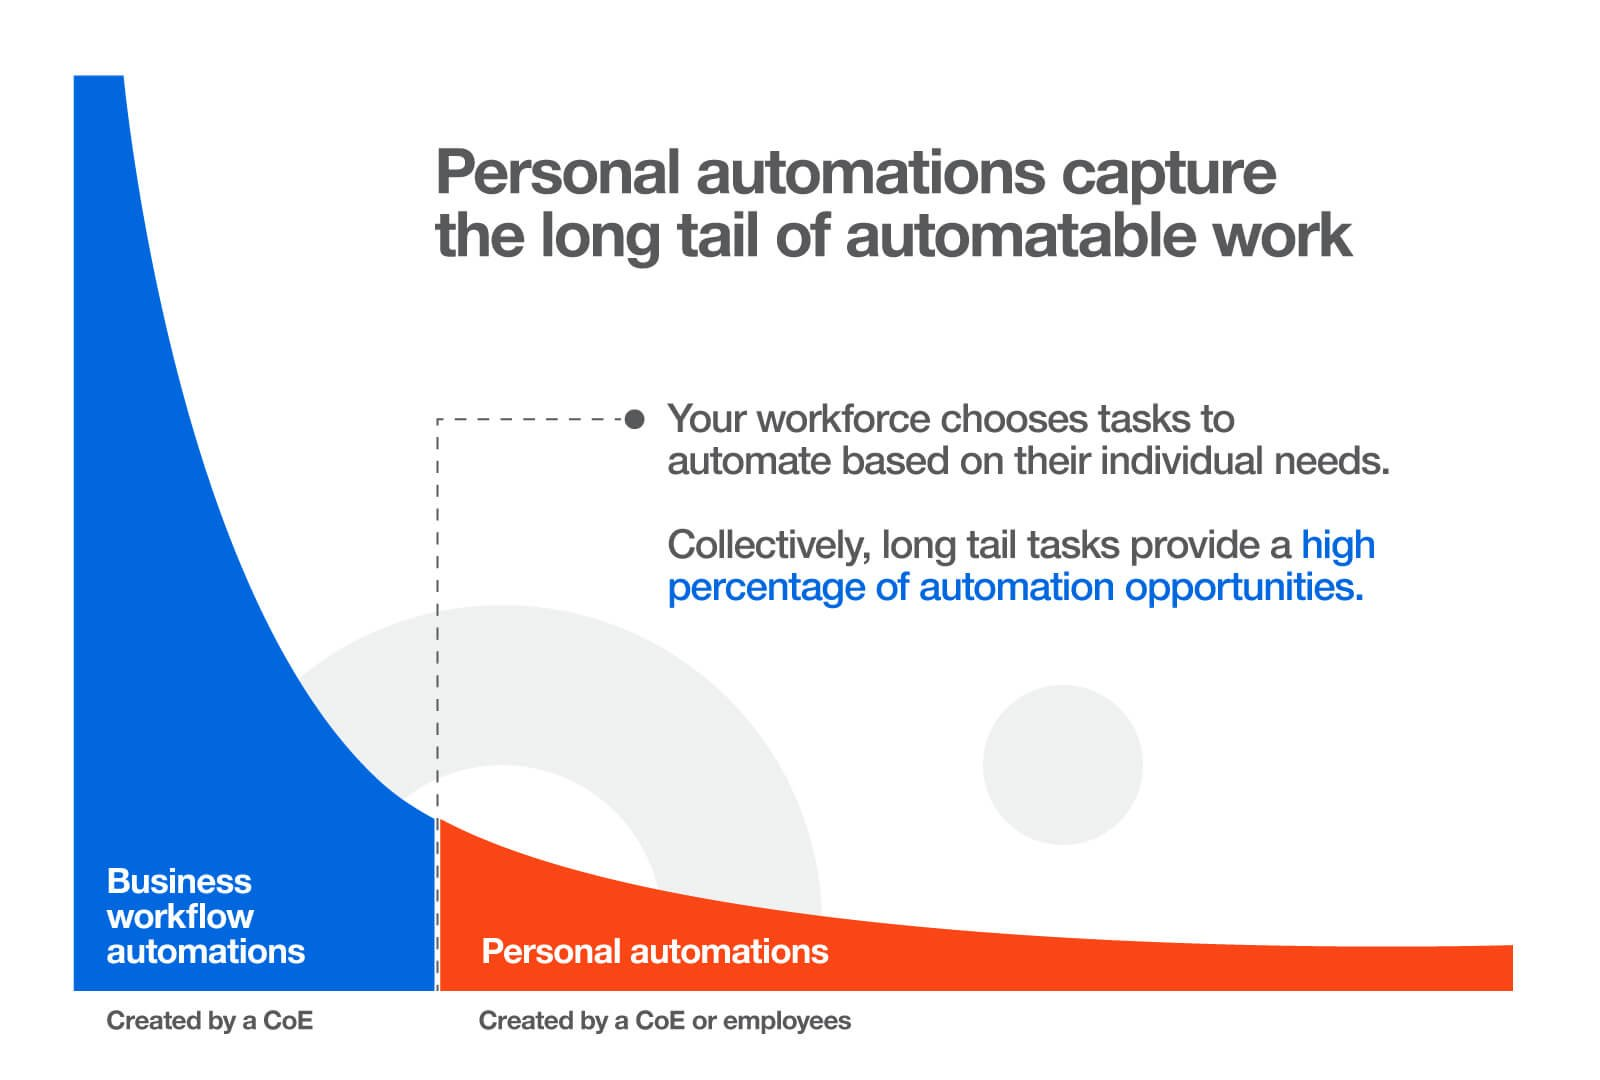 uipath-long-tail-automation-2021